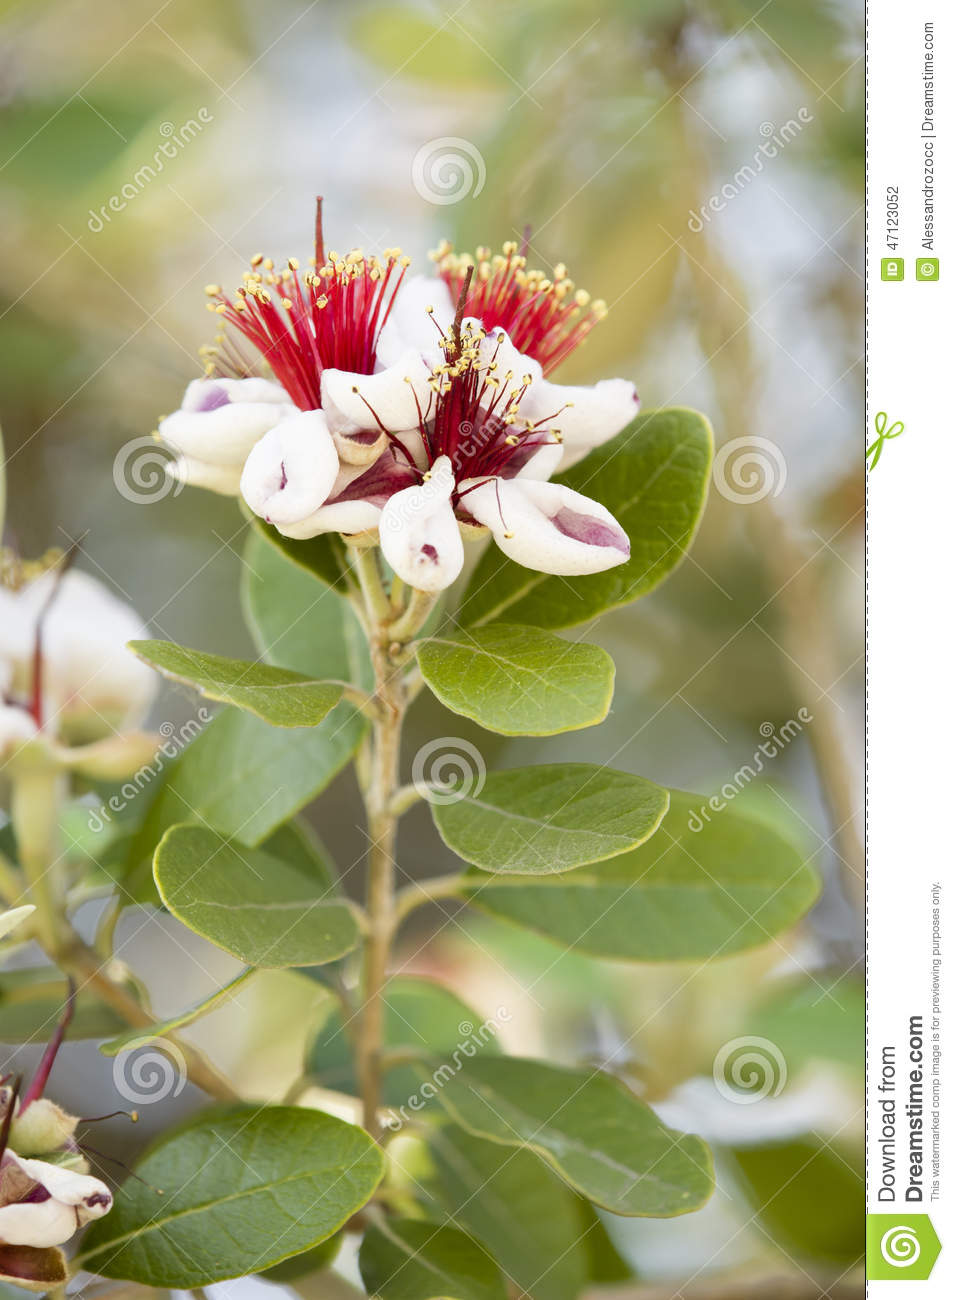 Red And White Flowers On A Tree Stock Photo Image Of Macro Detail